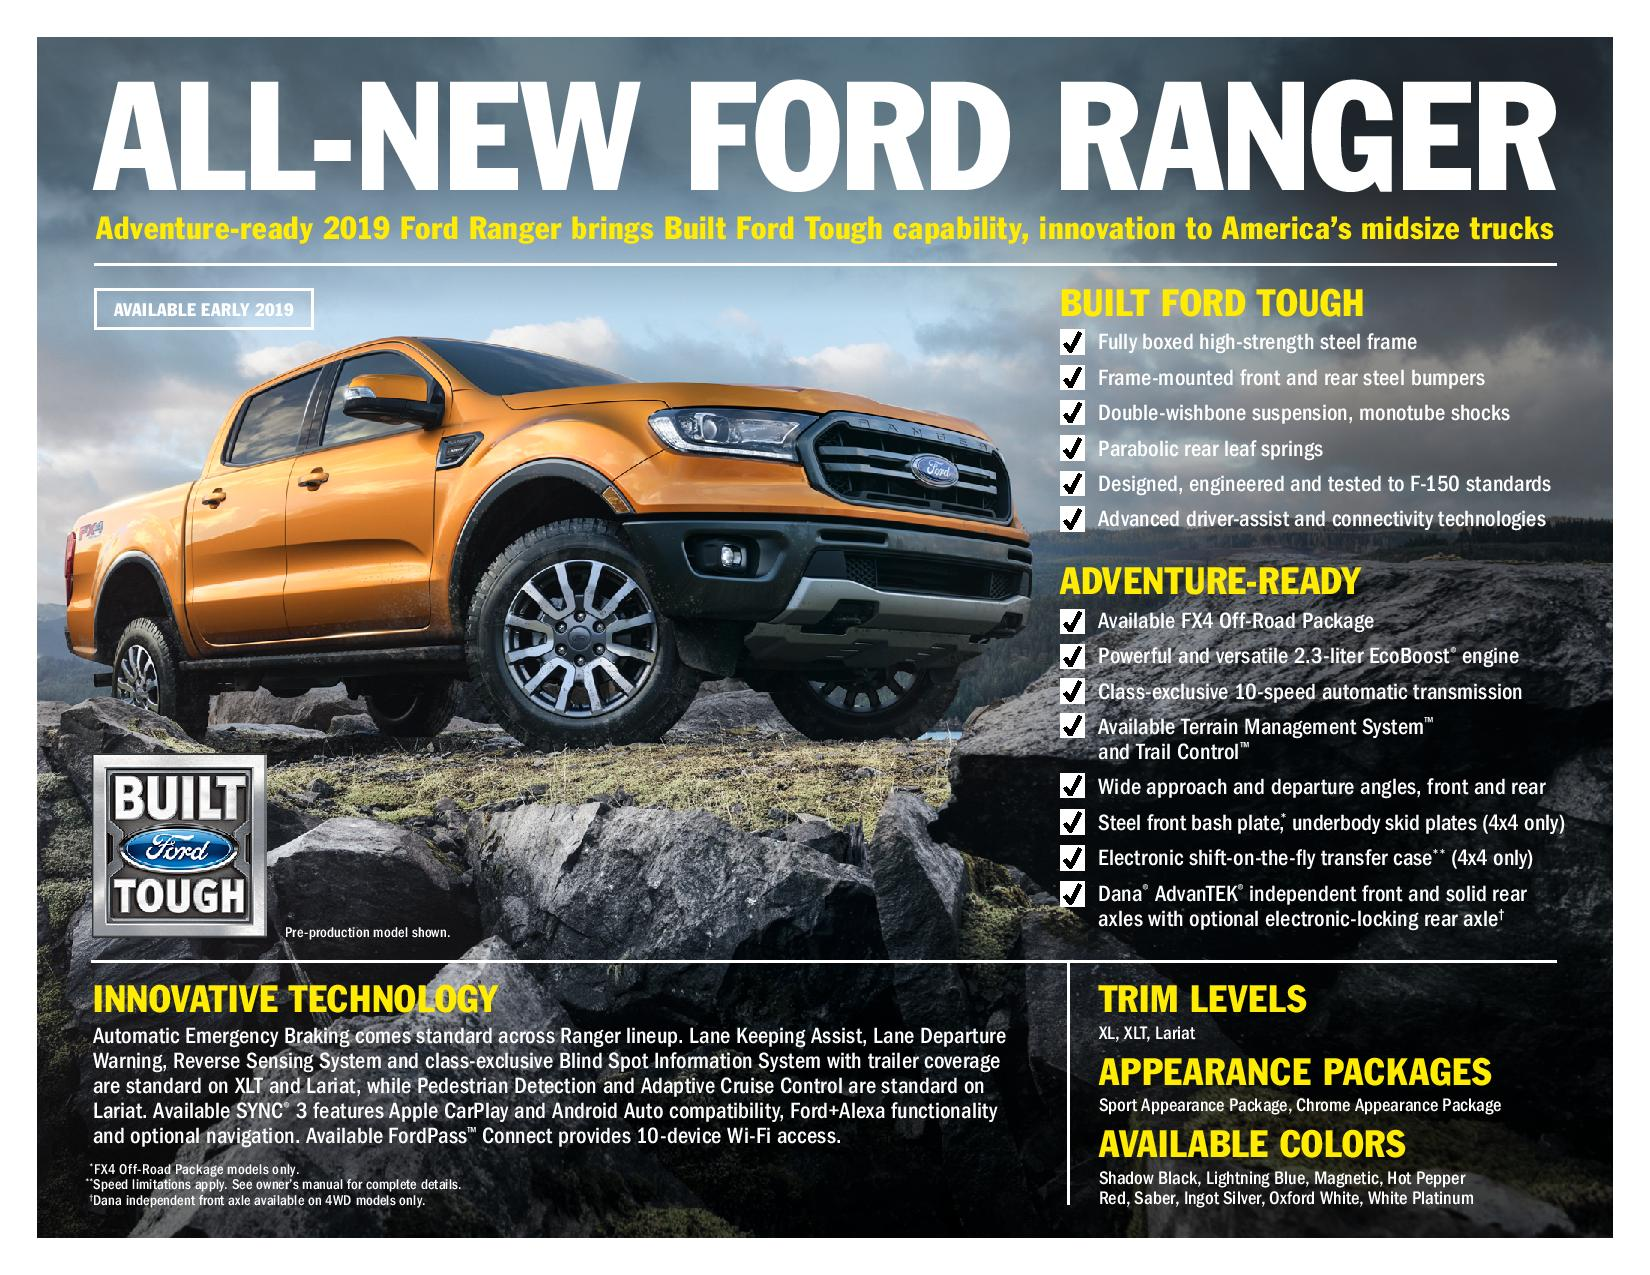 New and improved Ford Ranger unveiled at Detroit Auto Show